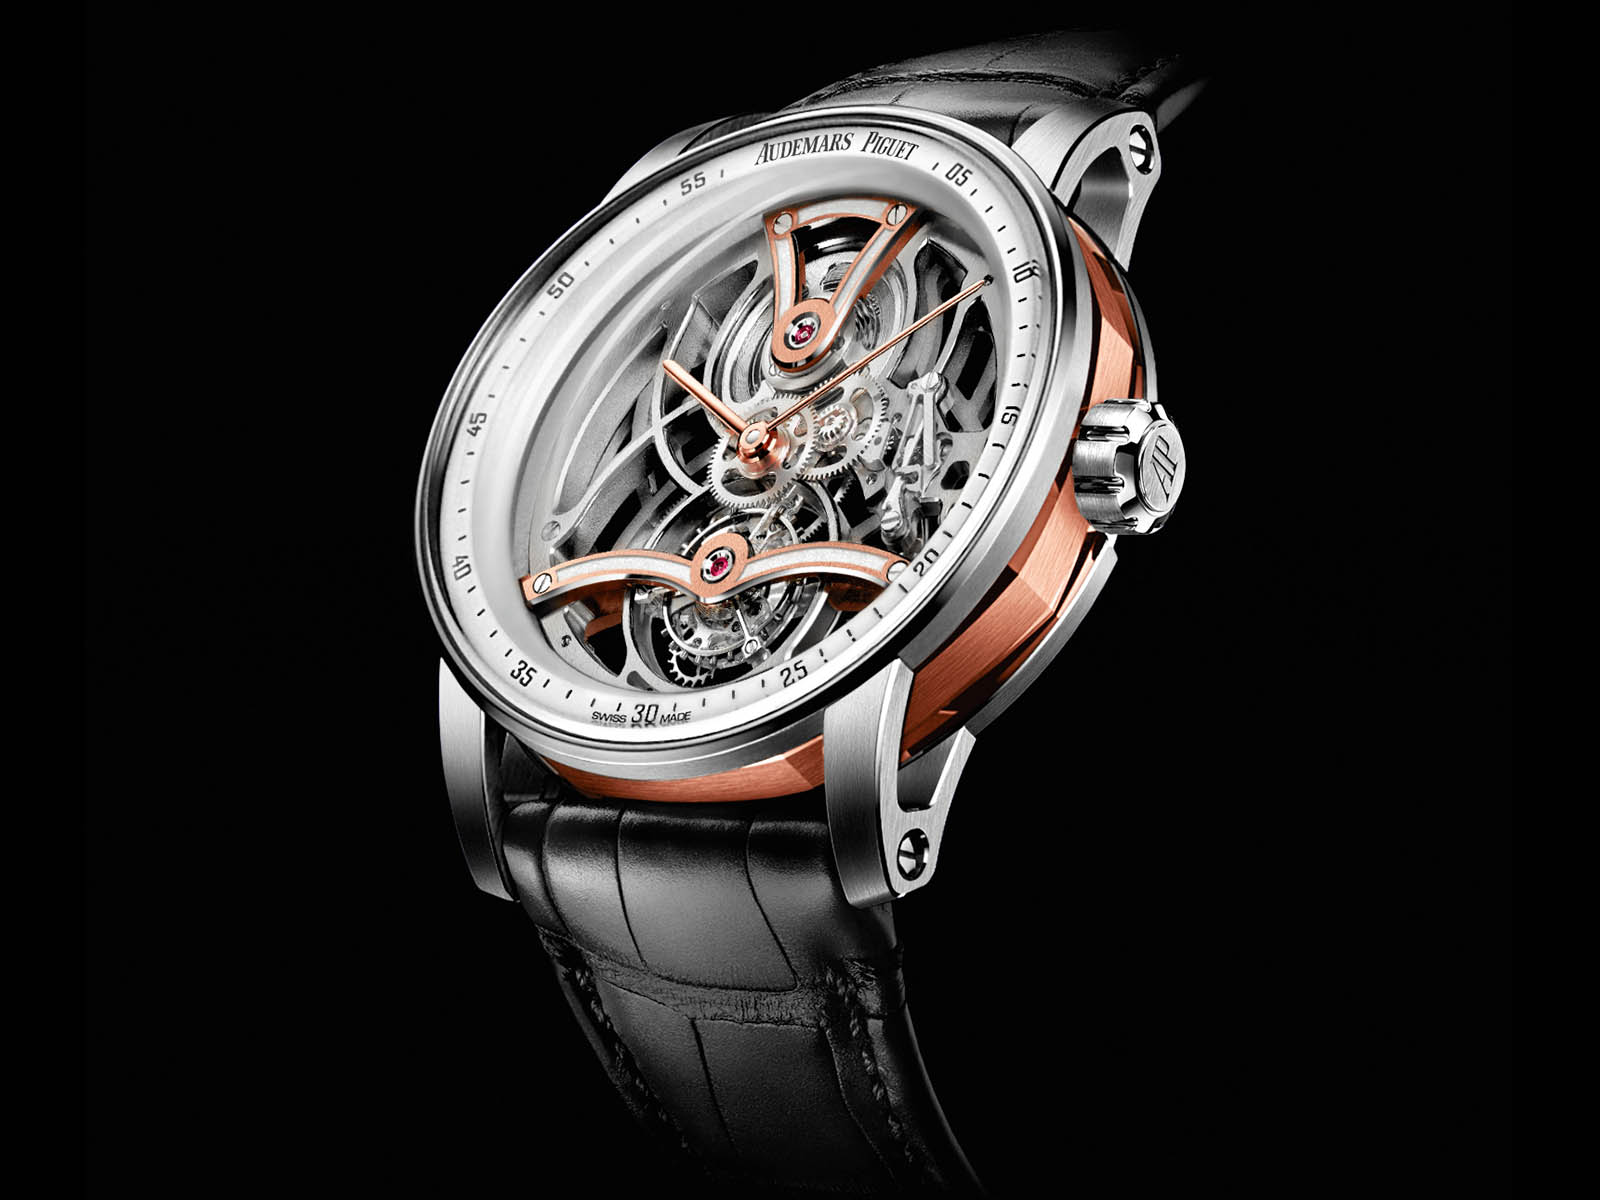 audemars-piguet-code-11-59-tourbillon-openworked-only-watch-edition.jpg